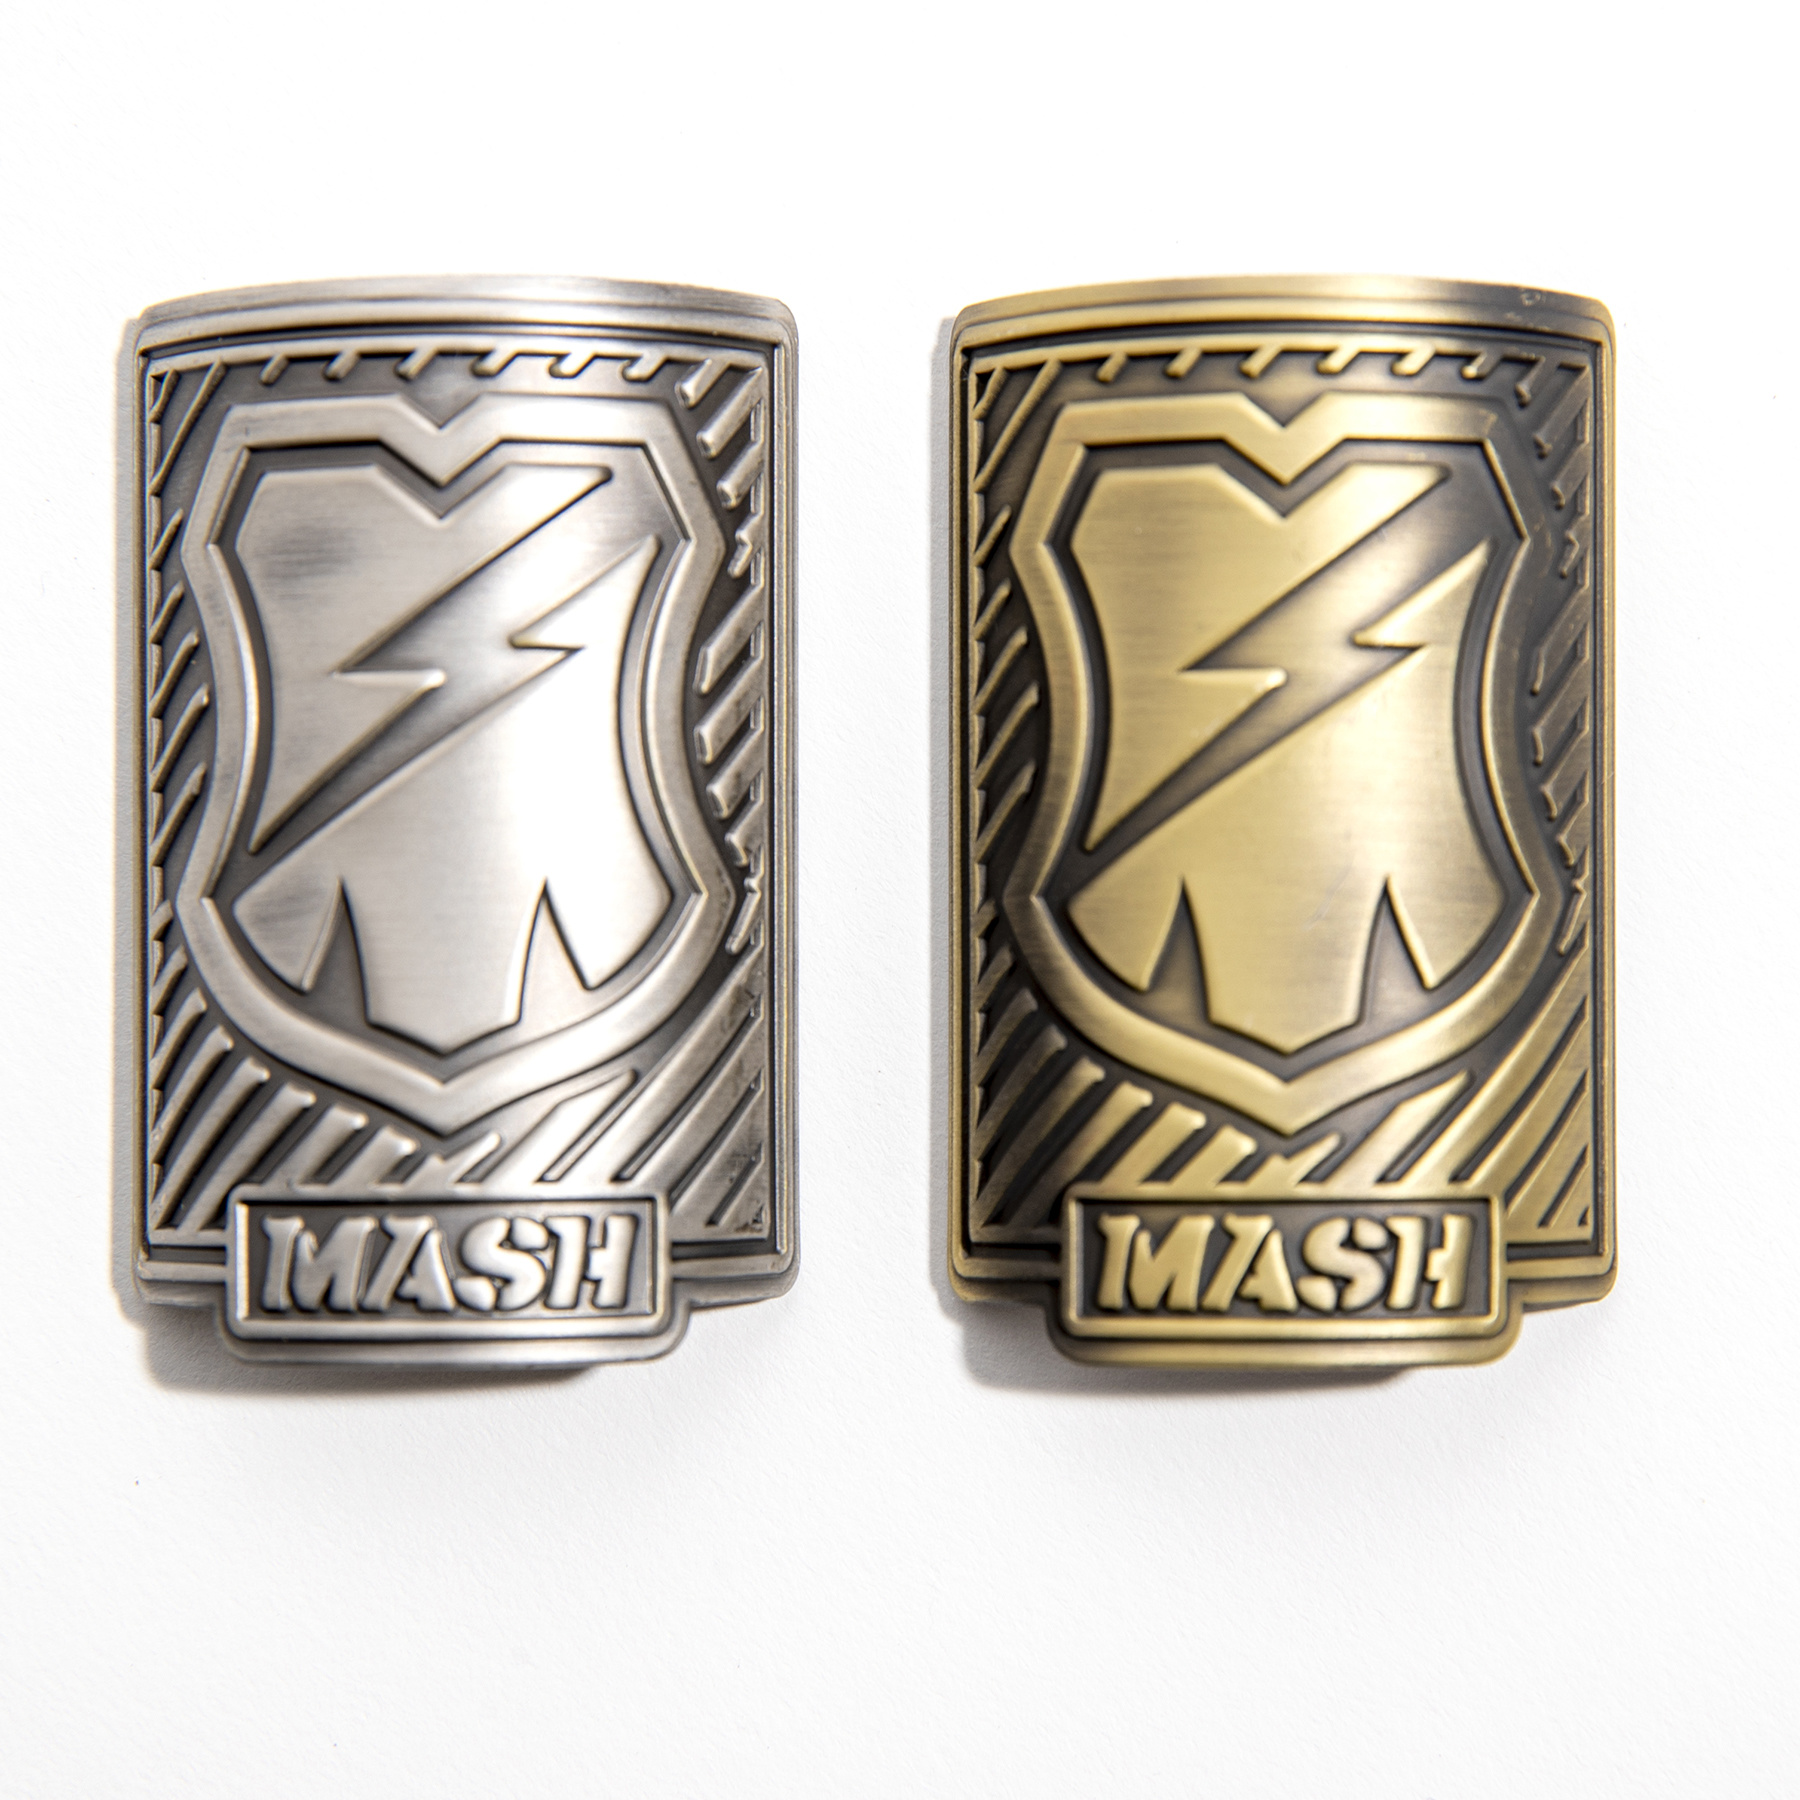 MASH 1 1/8 Head Badge Brass